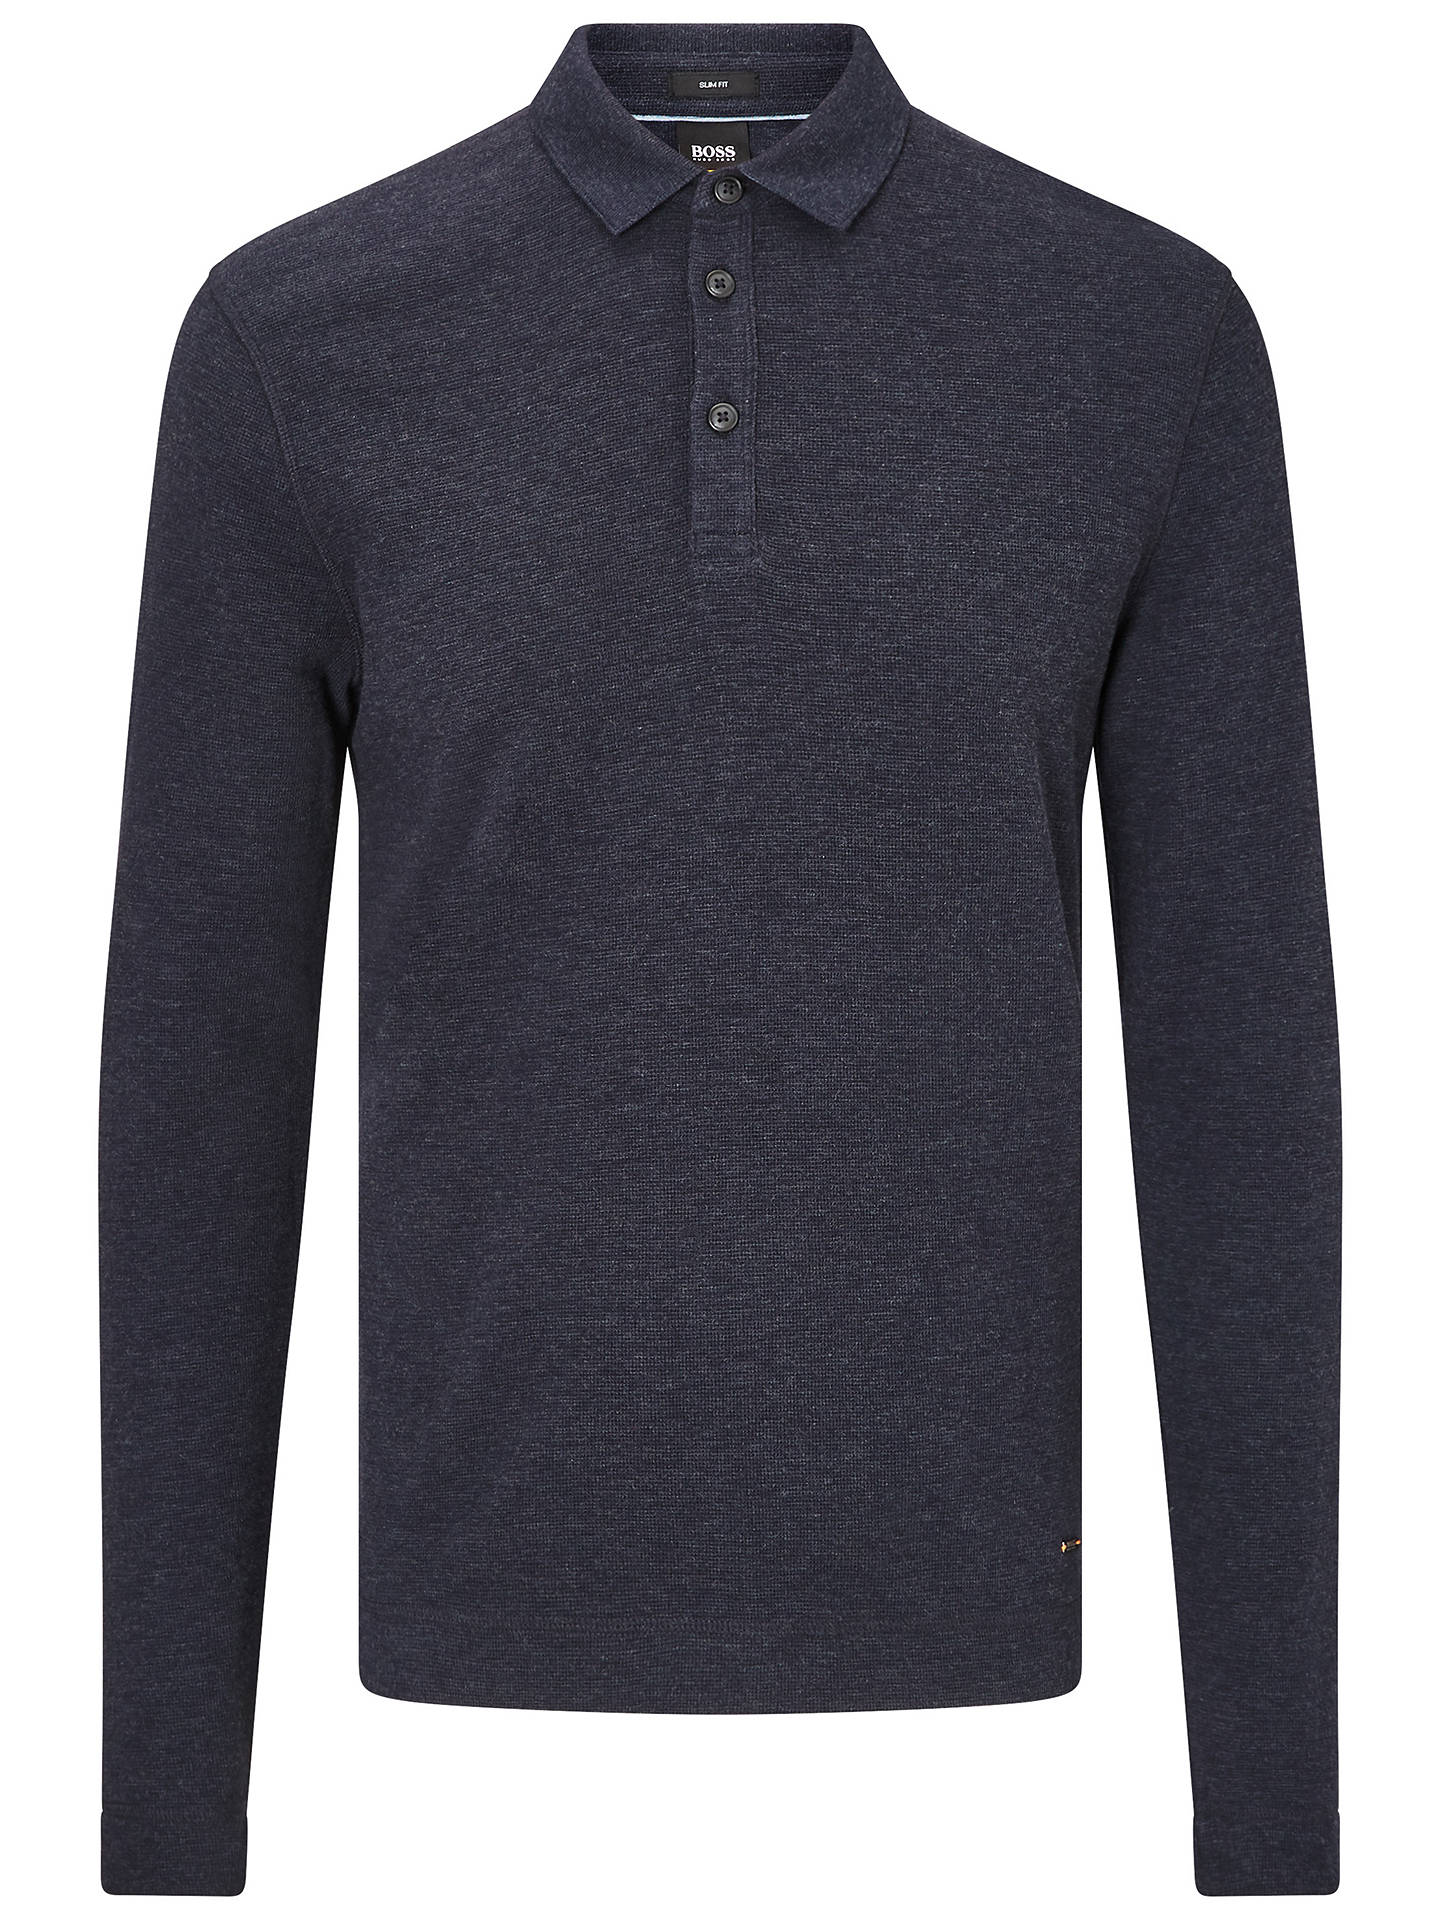 BuyBOSS Prix Long Sleeve Polo Shirt, Dark Blue, L Online at johnlewis.com